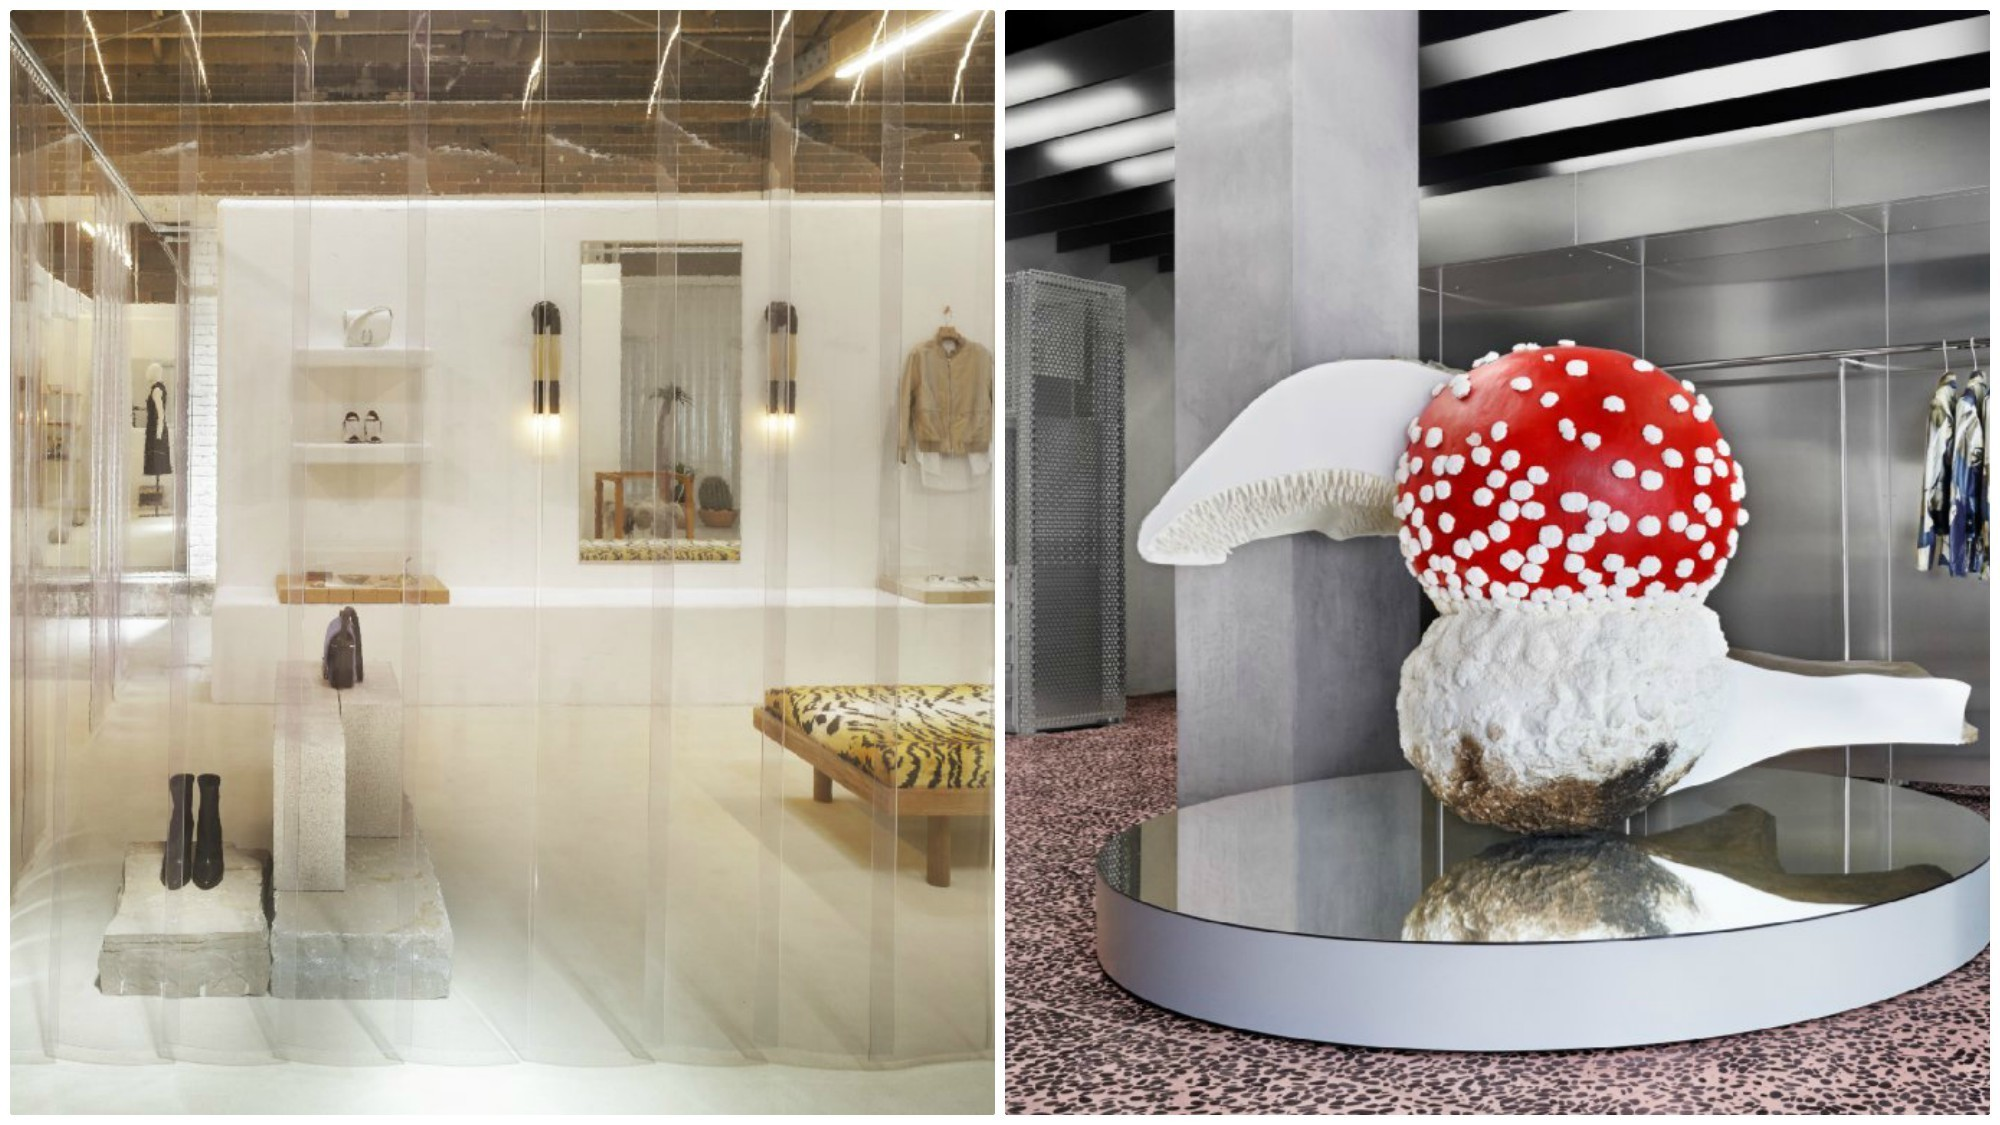 Uniqlo will join fashion brands including 3.1 Phillip Lim, left, and Acne Studios, which have retail spaces in downtown Los Angeles.